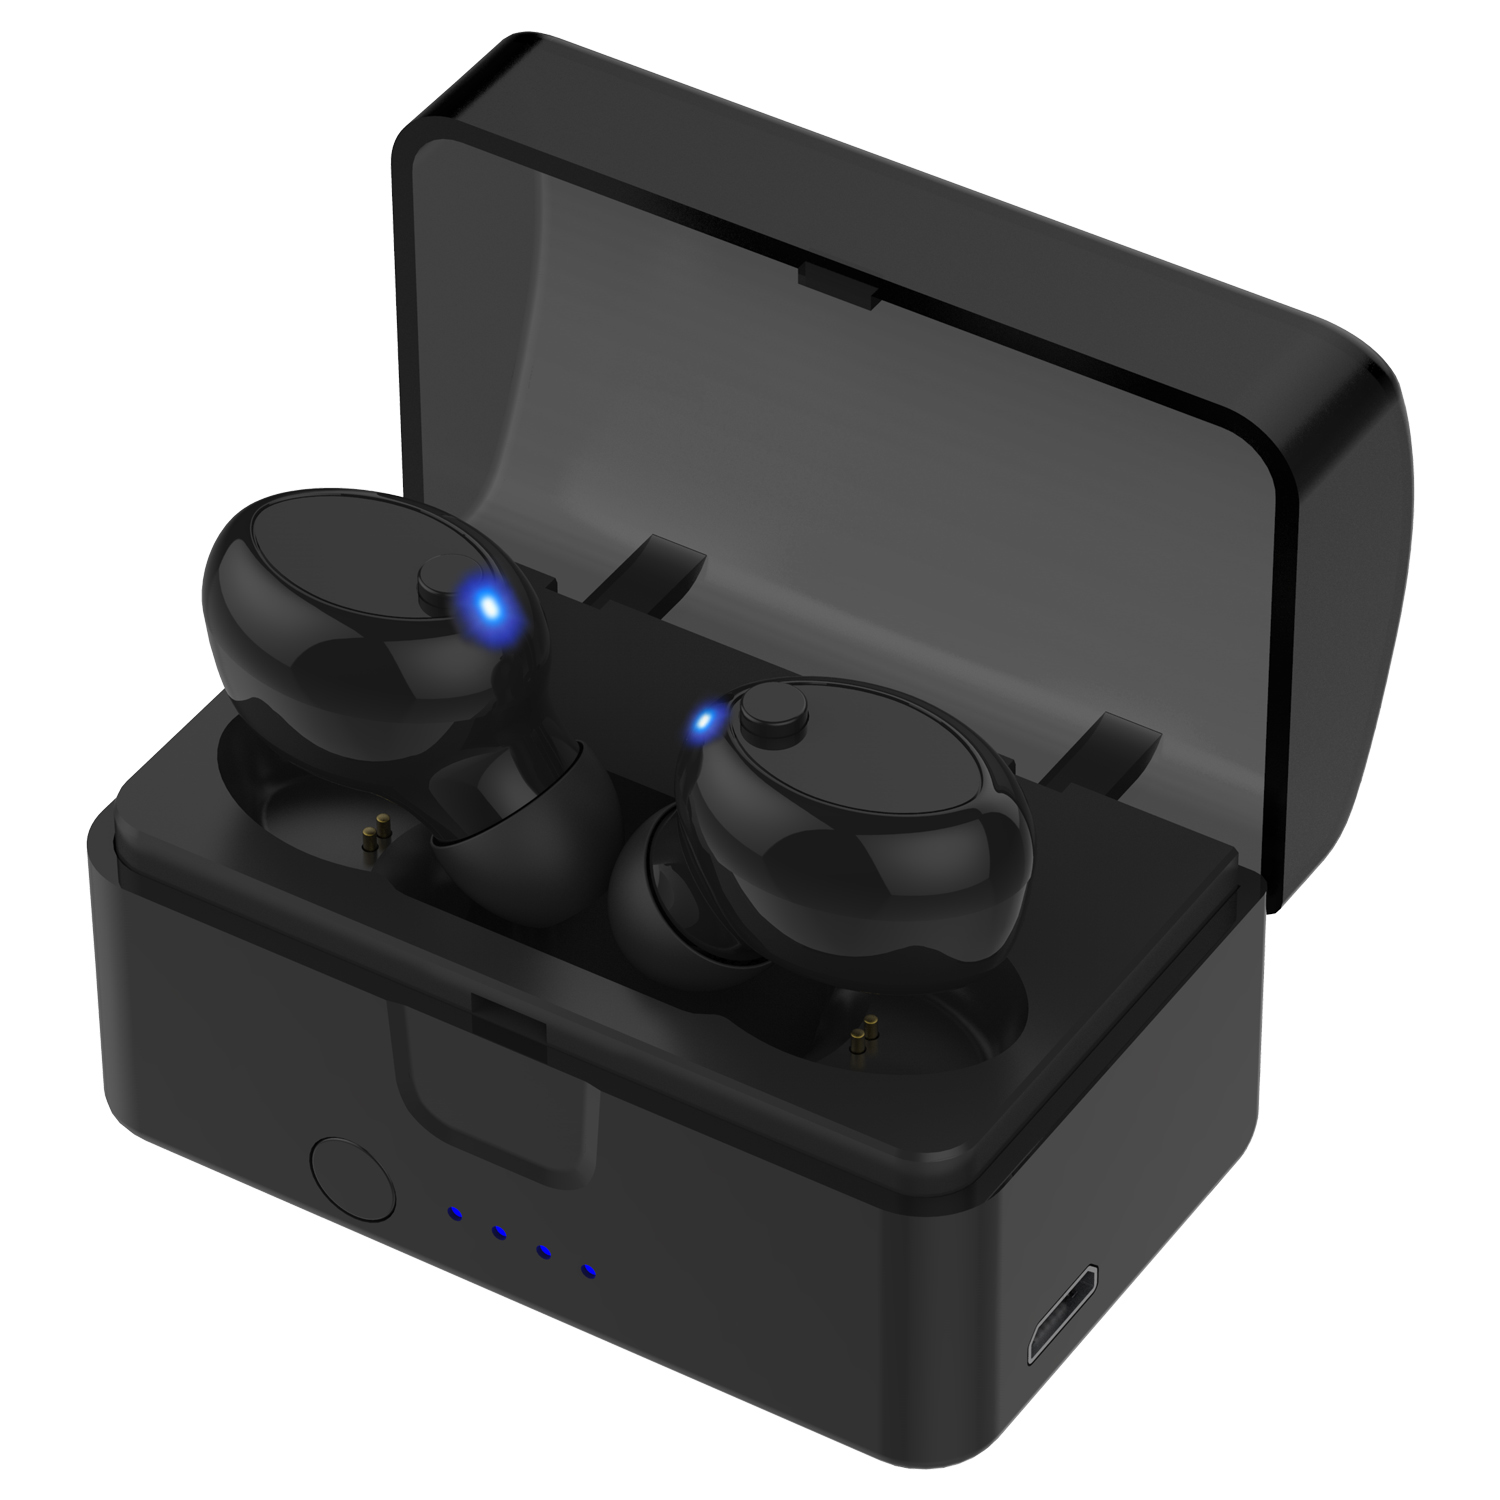 Mini Wireless Earbuds Bluetooth Earpiece Headphone -   Noise Cancelling Sweatproof Headset with Microphone Built-in Mic and Portable Charging Case for iPhone Samsung Smartphones